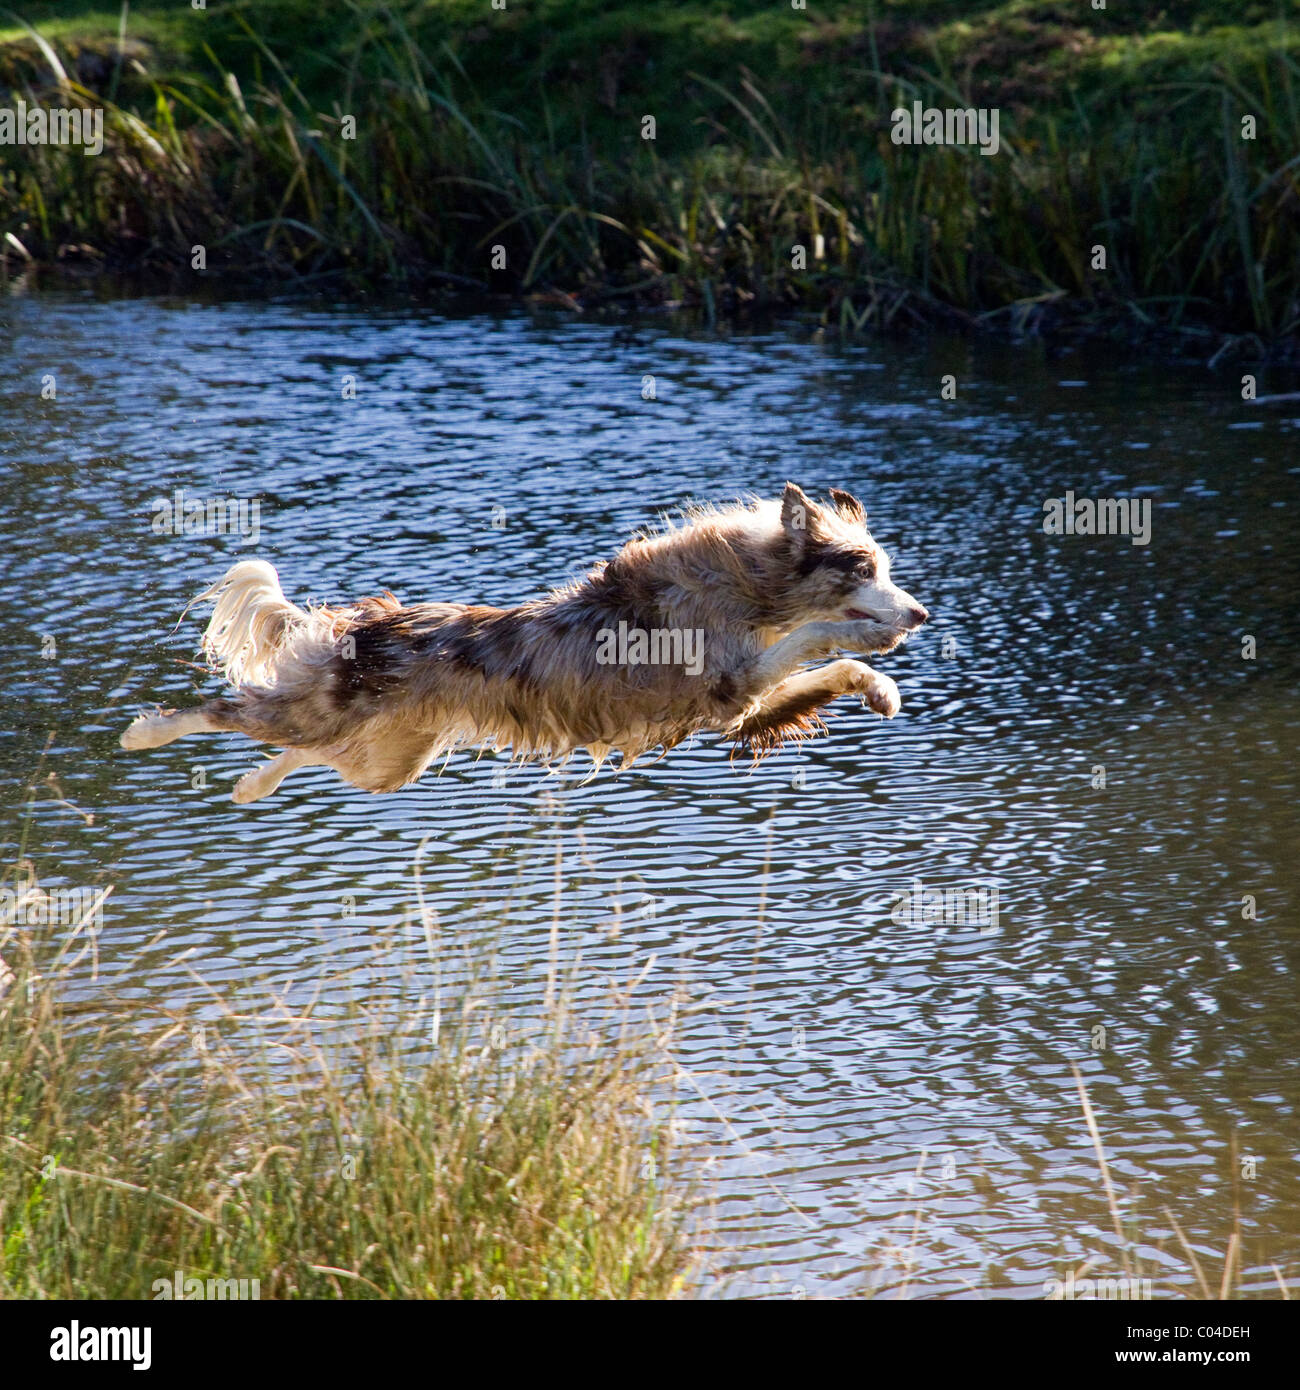 Collie dog leaping / diving headlong into water whilst chasing a thrown ball. - Stock Image